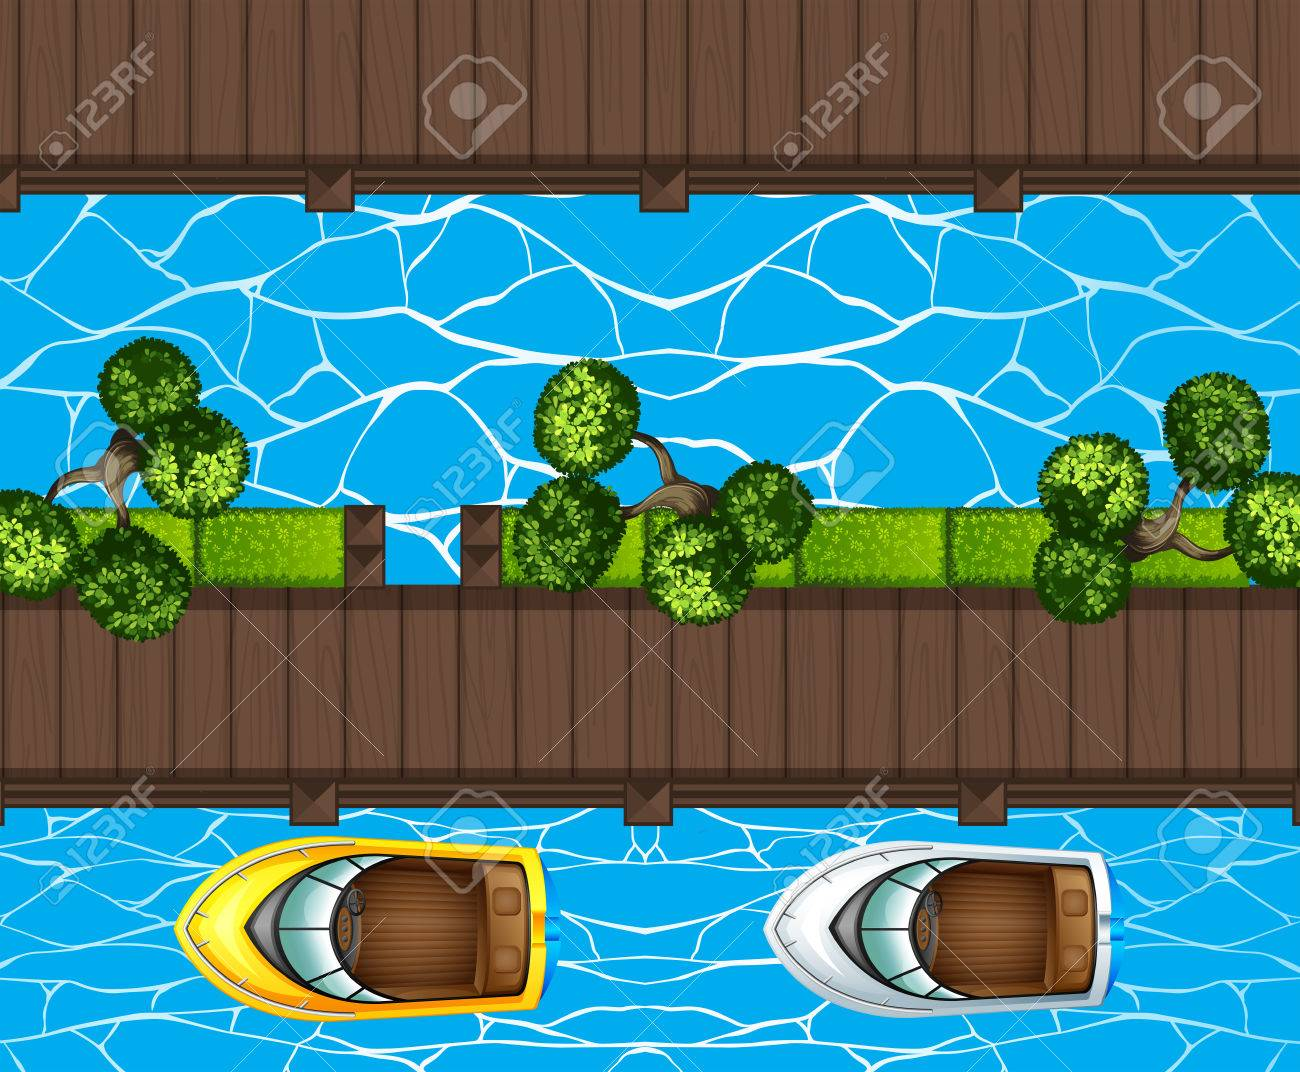 Top view of boats parking at the pier illustration - 57354877